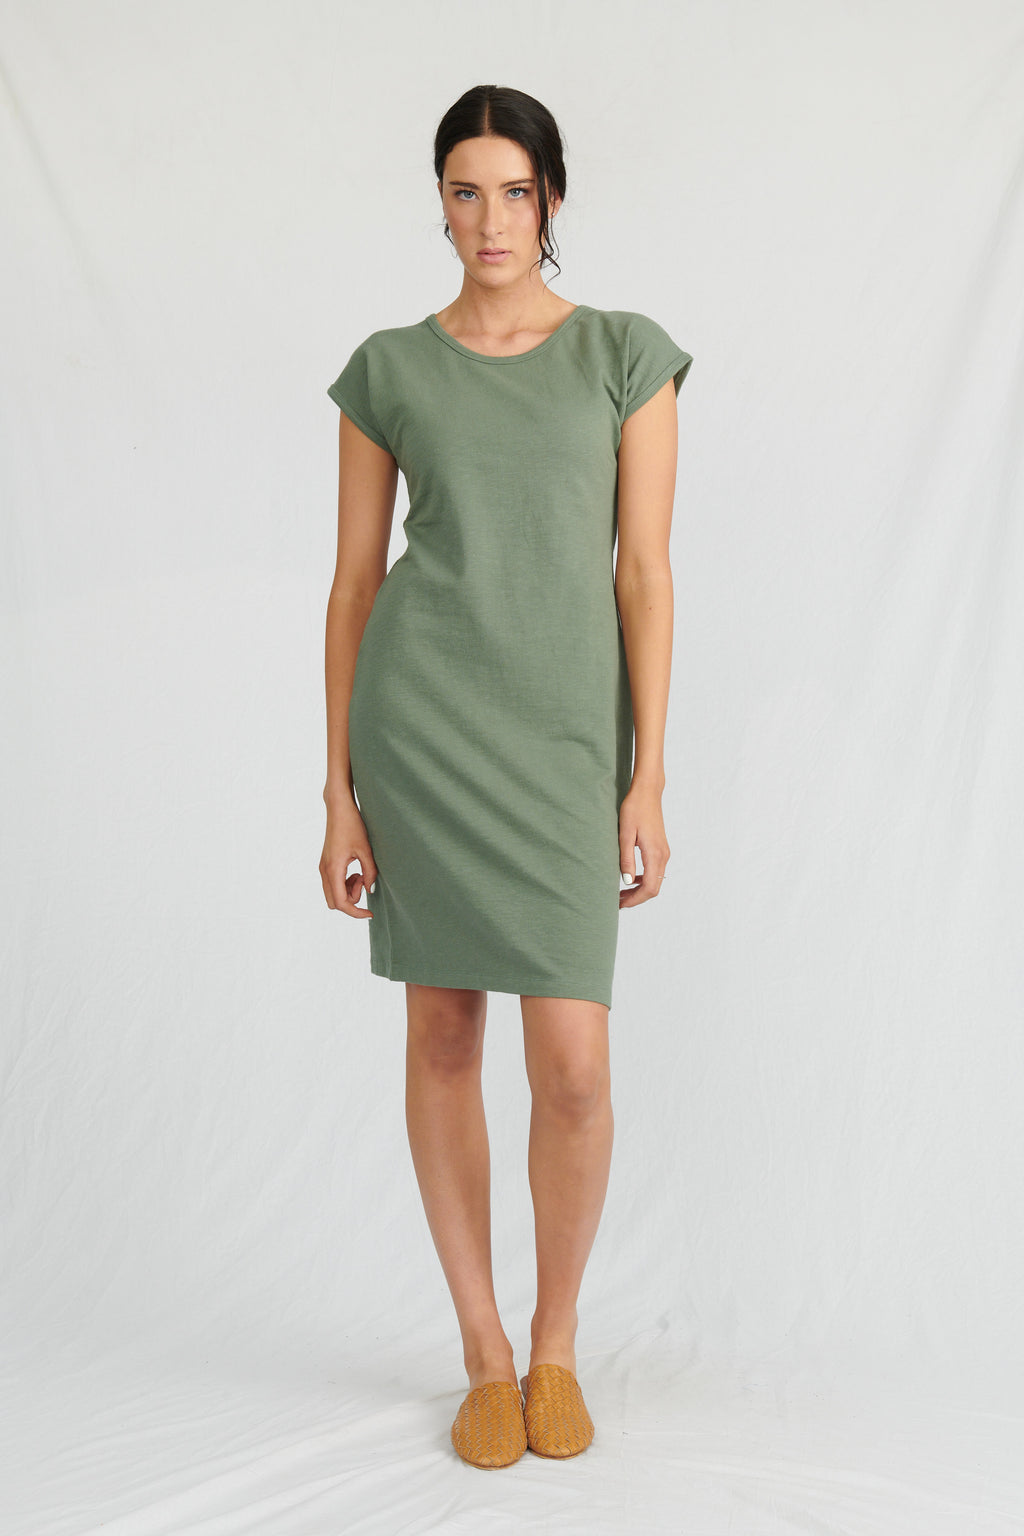 Lulu Organics Cotton Essentials - Malibu Dress Khaki